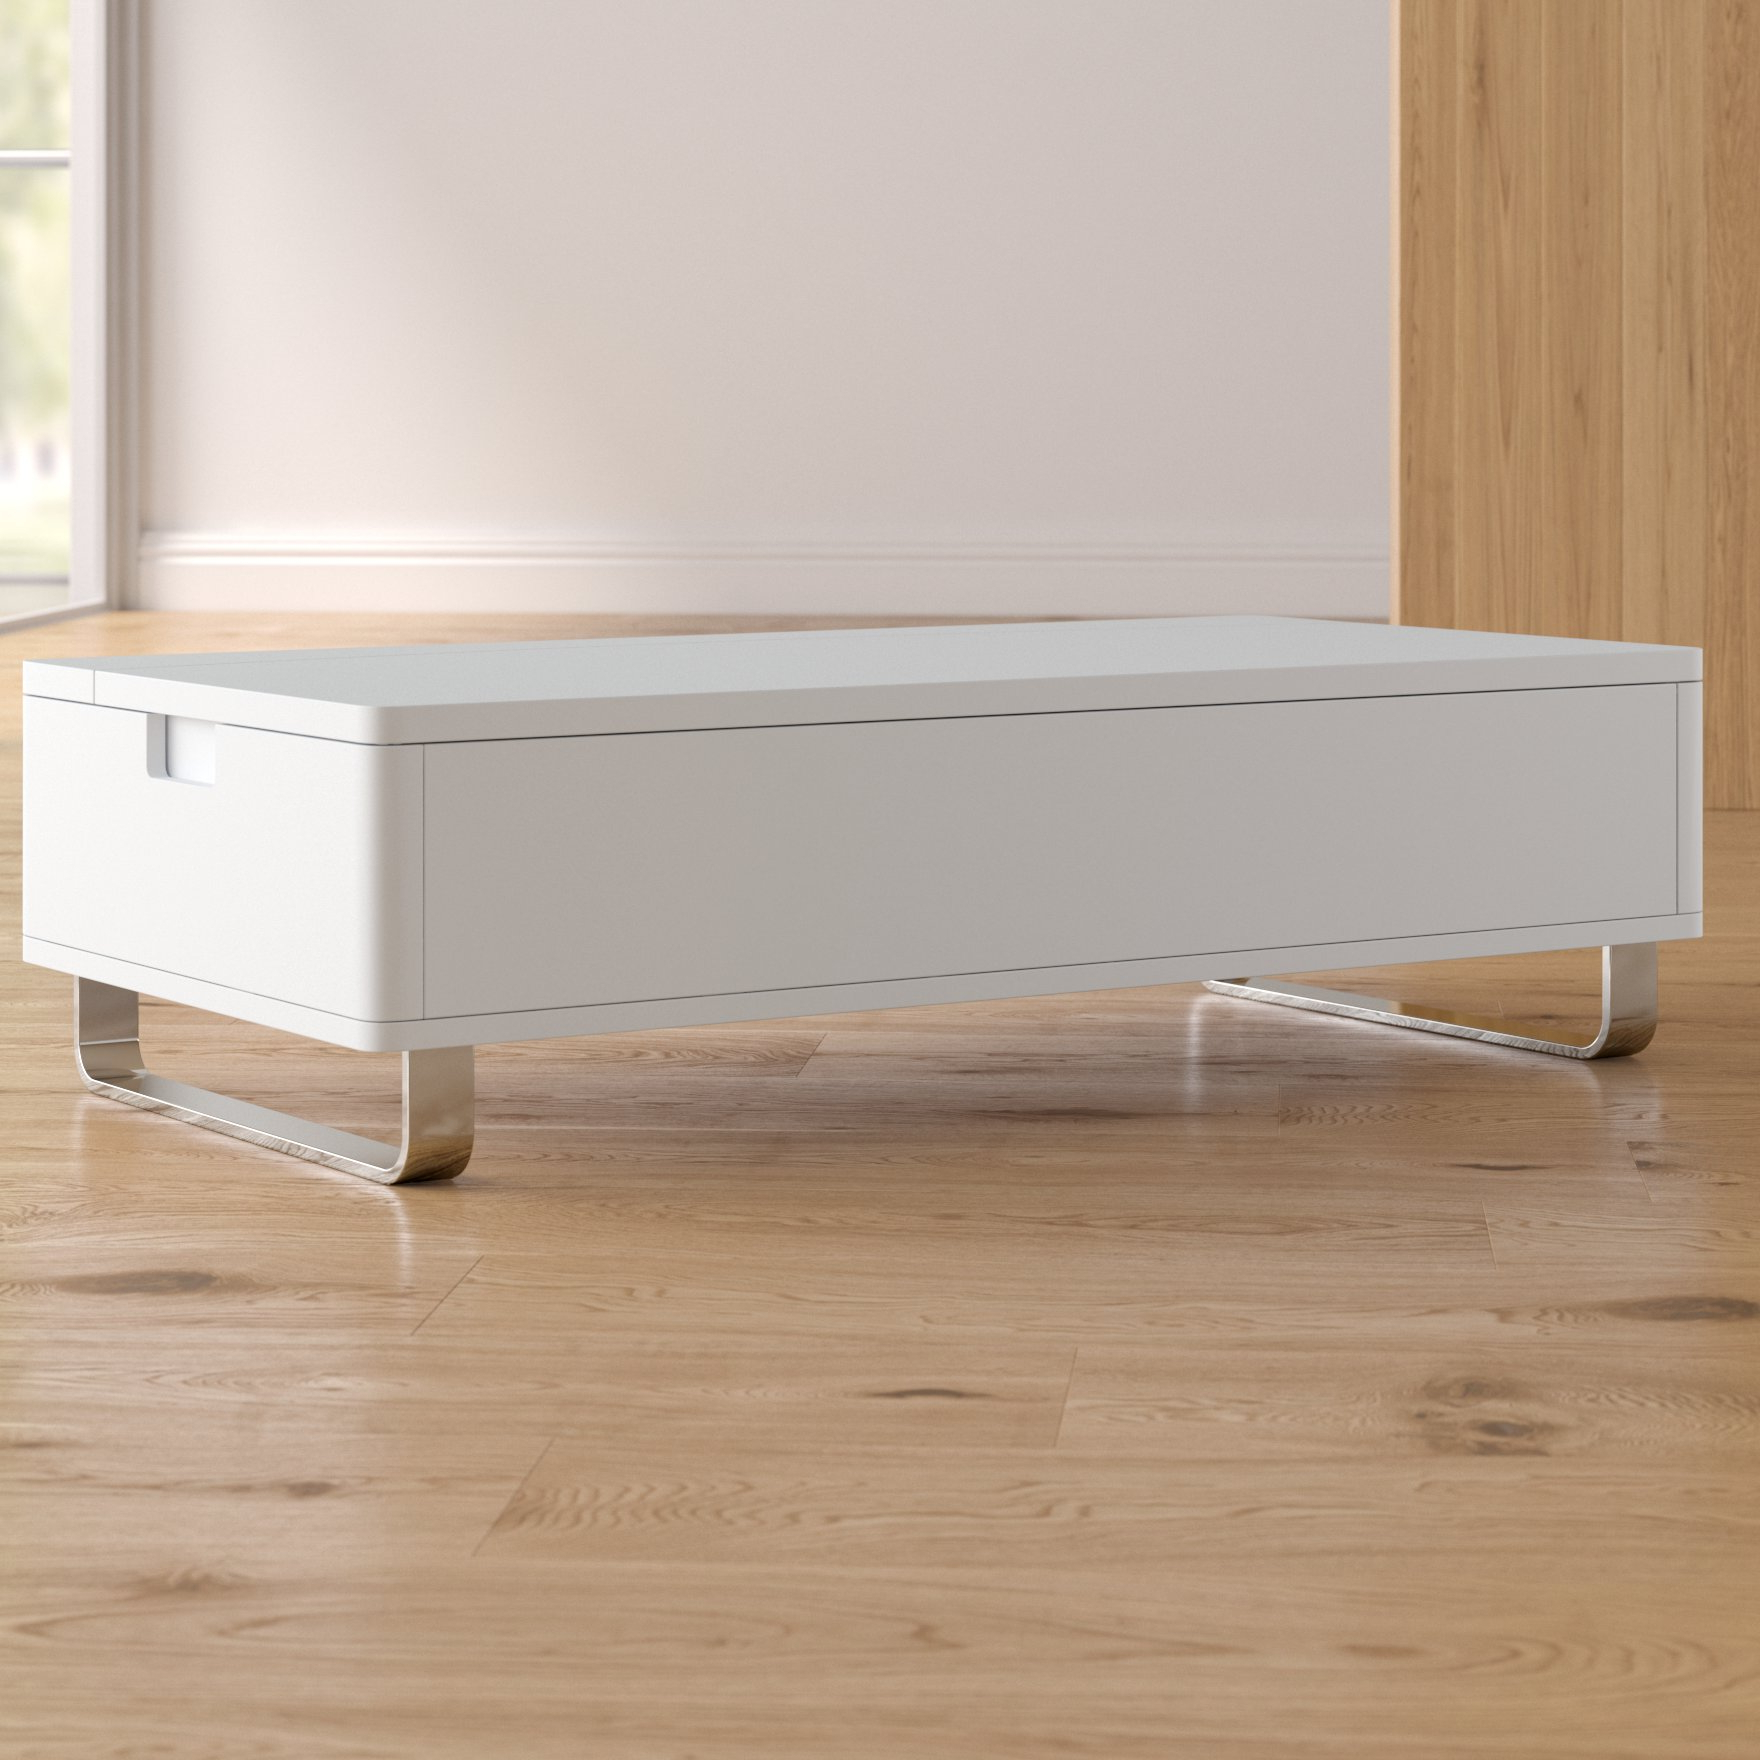 Wayfair Intended For Well Known Strick & Bolton Sylvia Geometric High Gloss Coffee Tables (View 17 of 20)